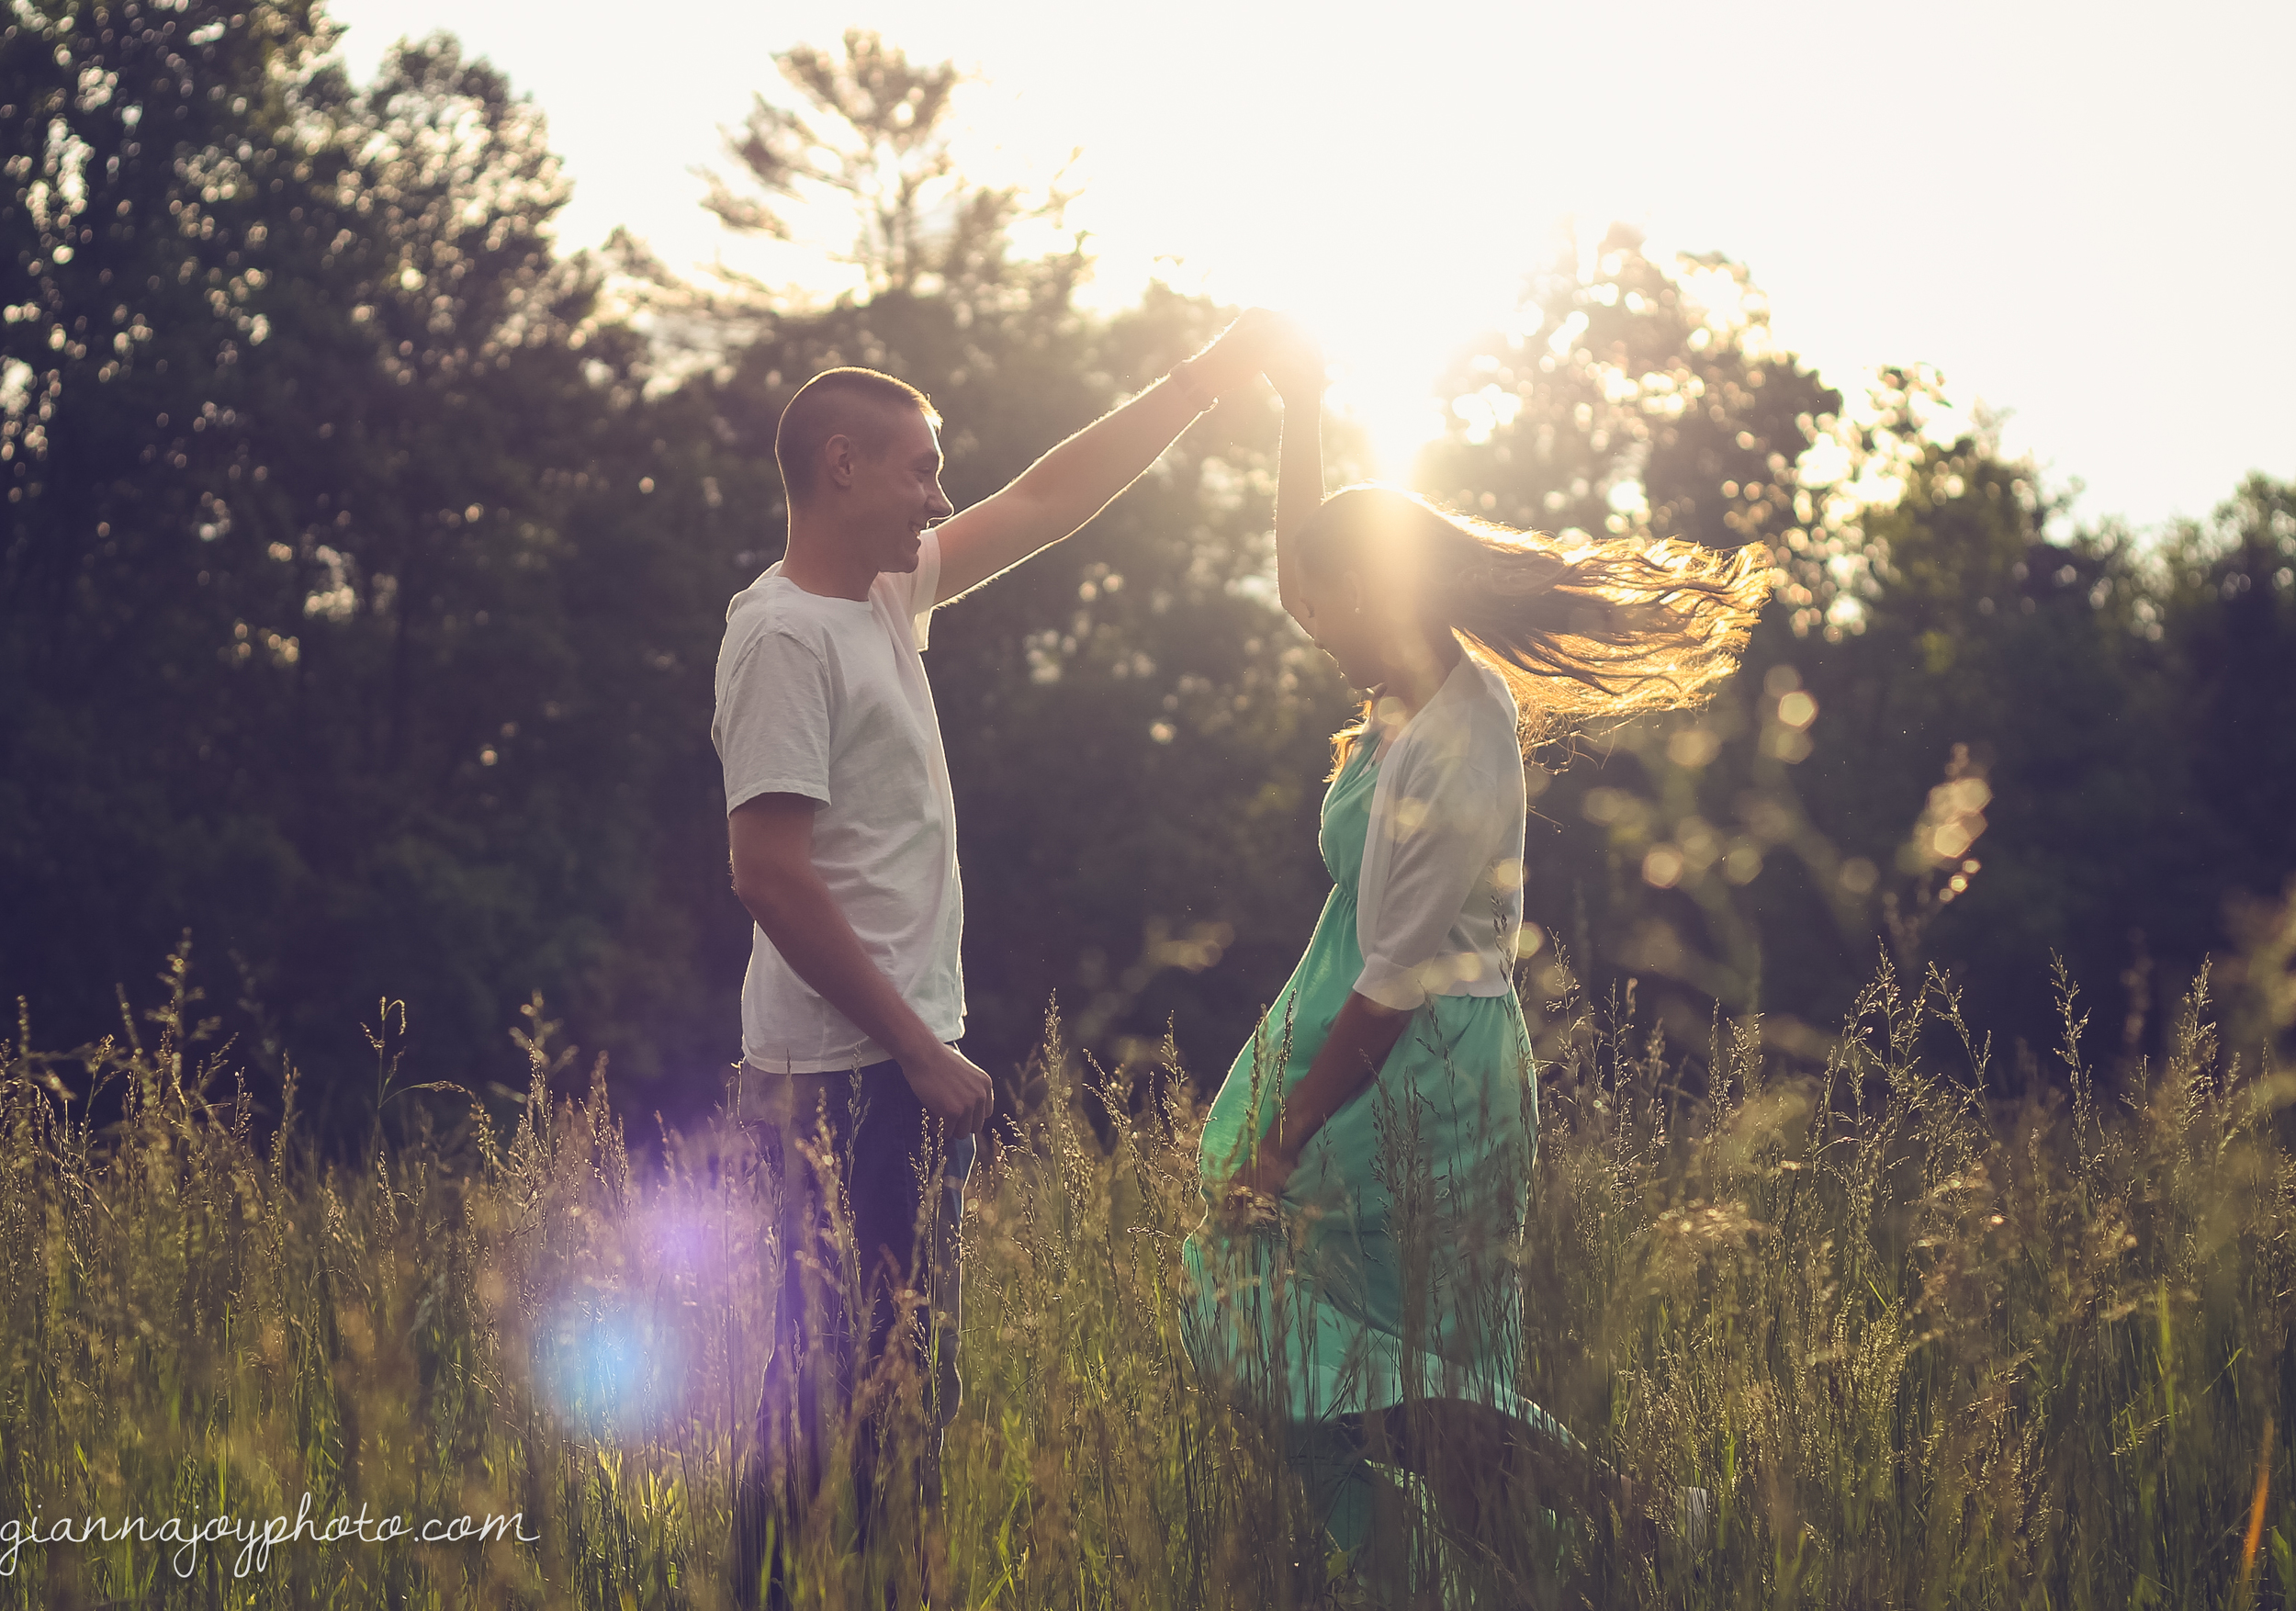 This is one of my absolute favorite shots of the evening! It was a moment when the sun peeked out and we caught some beautiful light! Plus, how adorable are they?